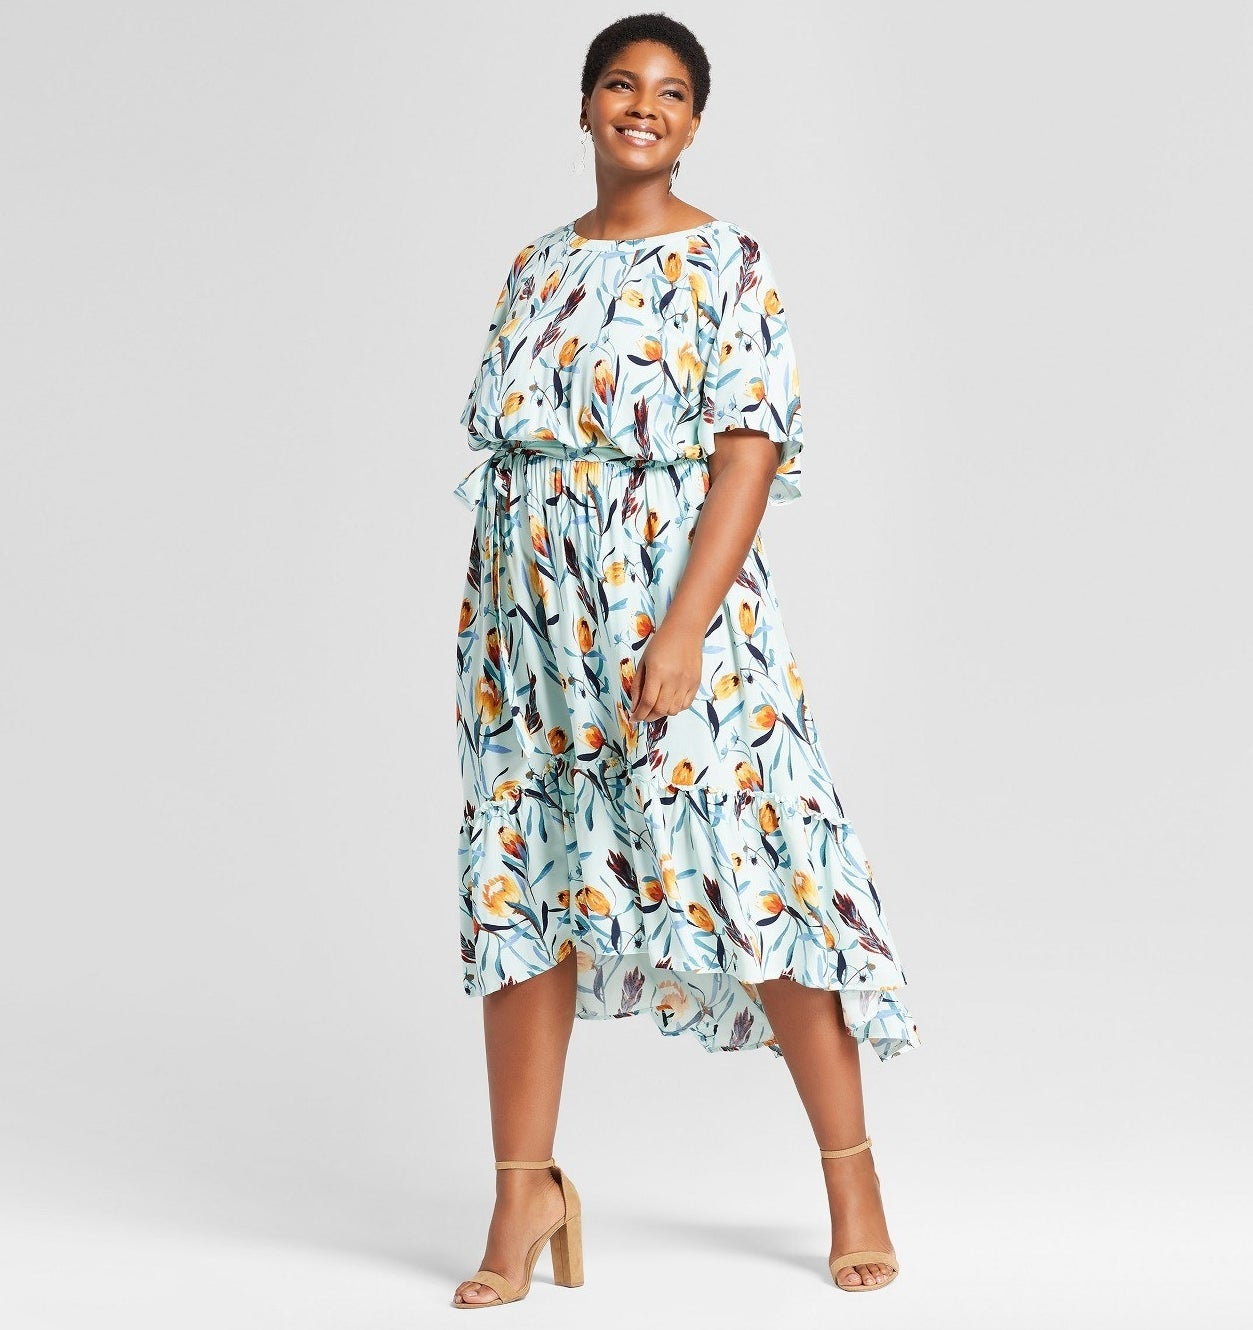 """Promising review: """"The compliments didn't stop! This dress is a great material, sturdy but breathable. I wore it to a graduation and it was the perfect number! It will be a definite staple this summer."""" —VanessaGet it from Target for $34.99 (available in sizes 0X-4X)."""